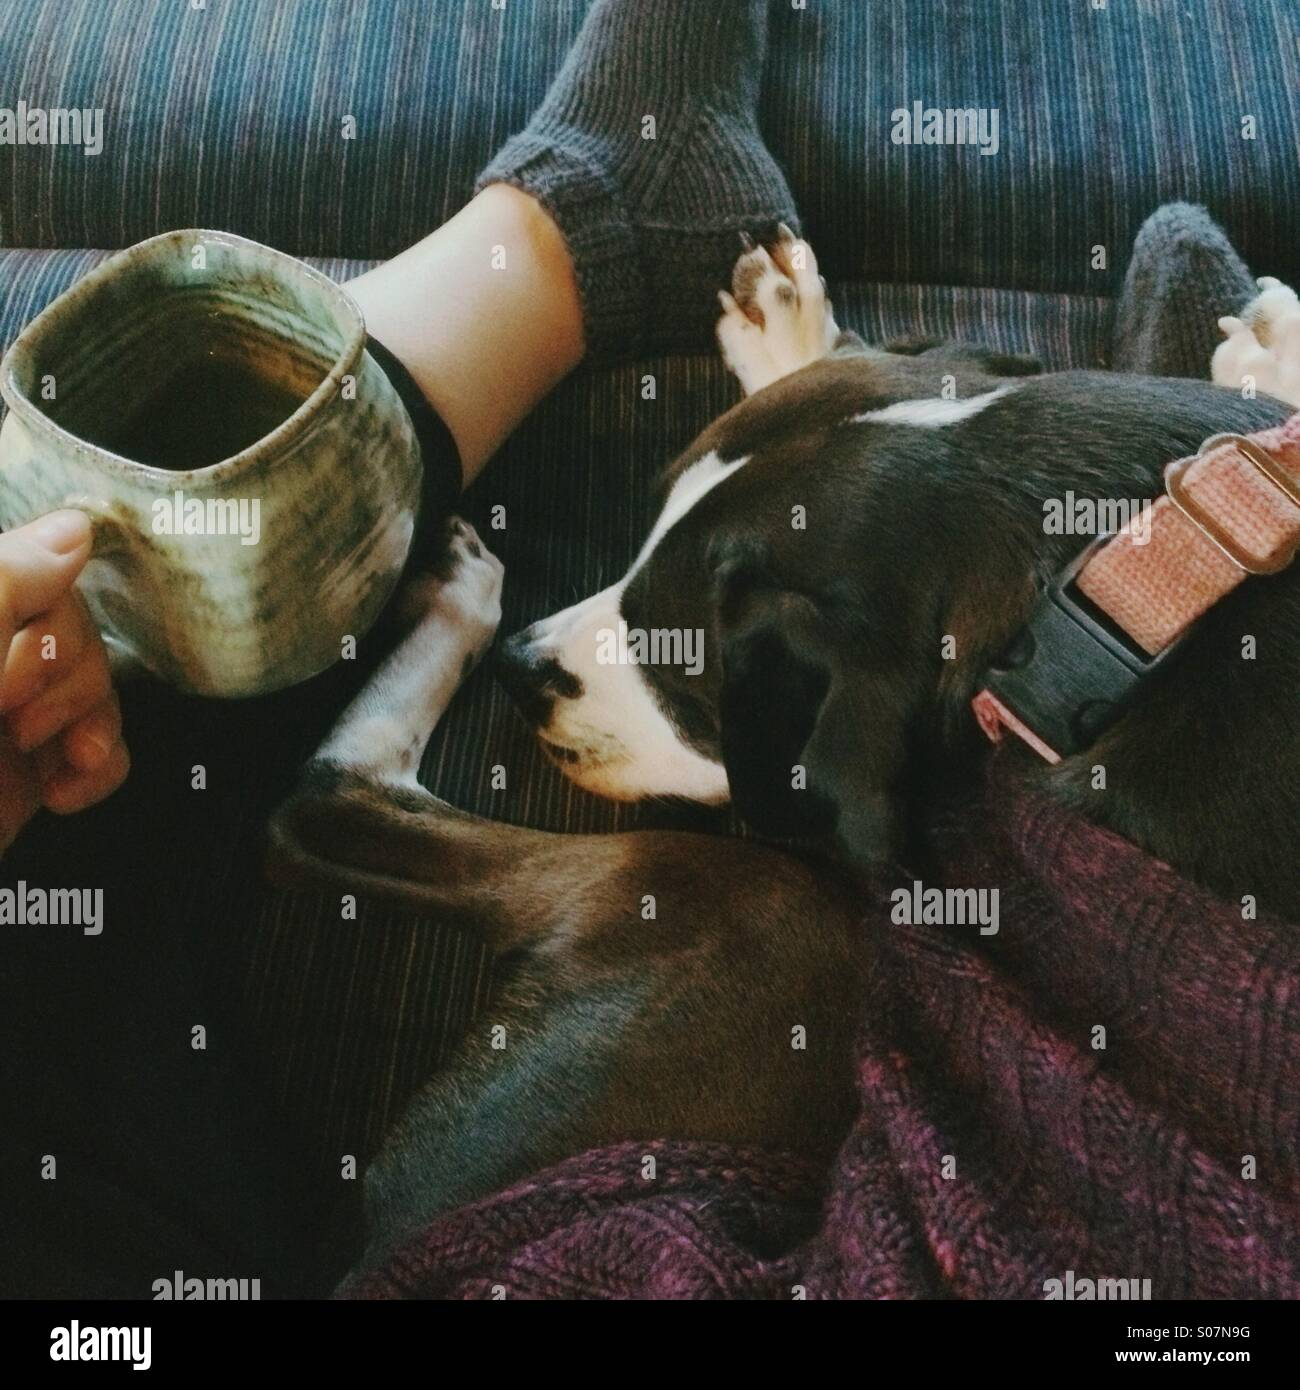 Drinking tea with cute dog on lap on recliner in winter. - Stock Image